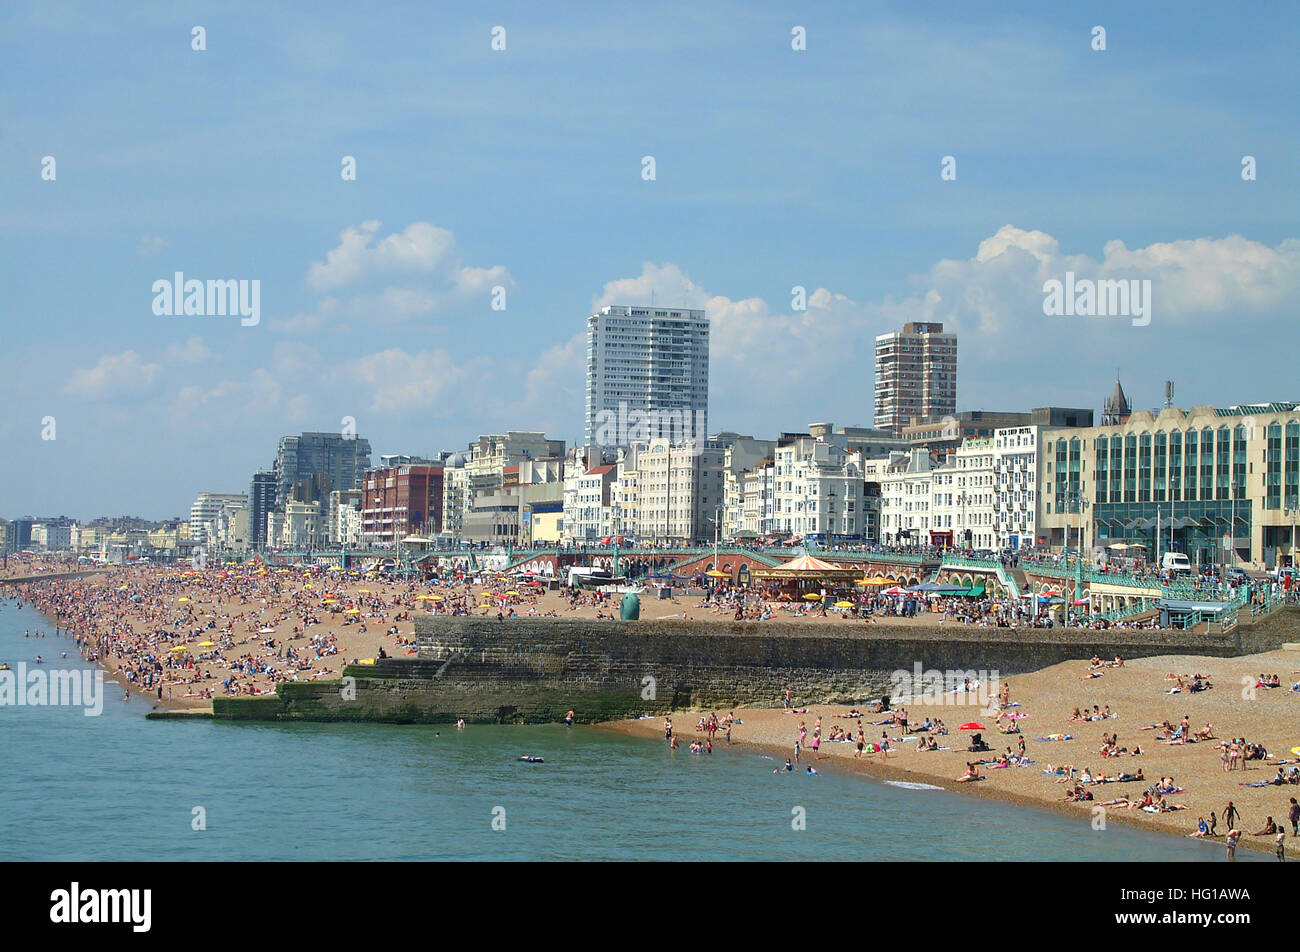 People on Brighton beach with hotels along the seafront, Sussex, England. Stock Photo